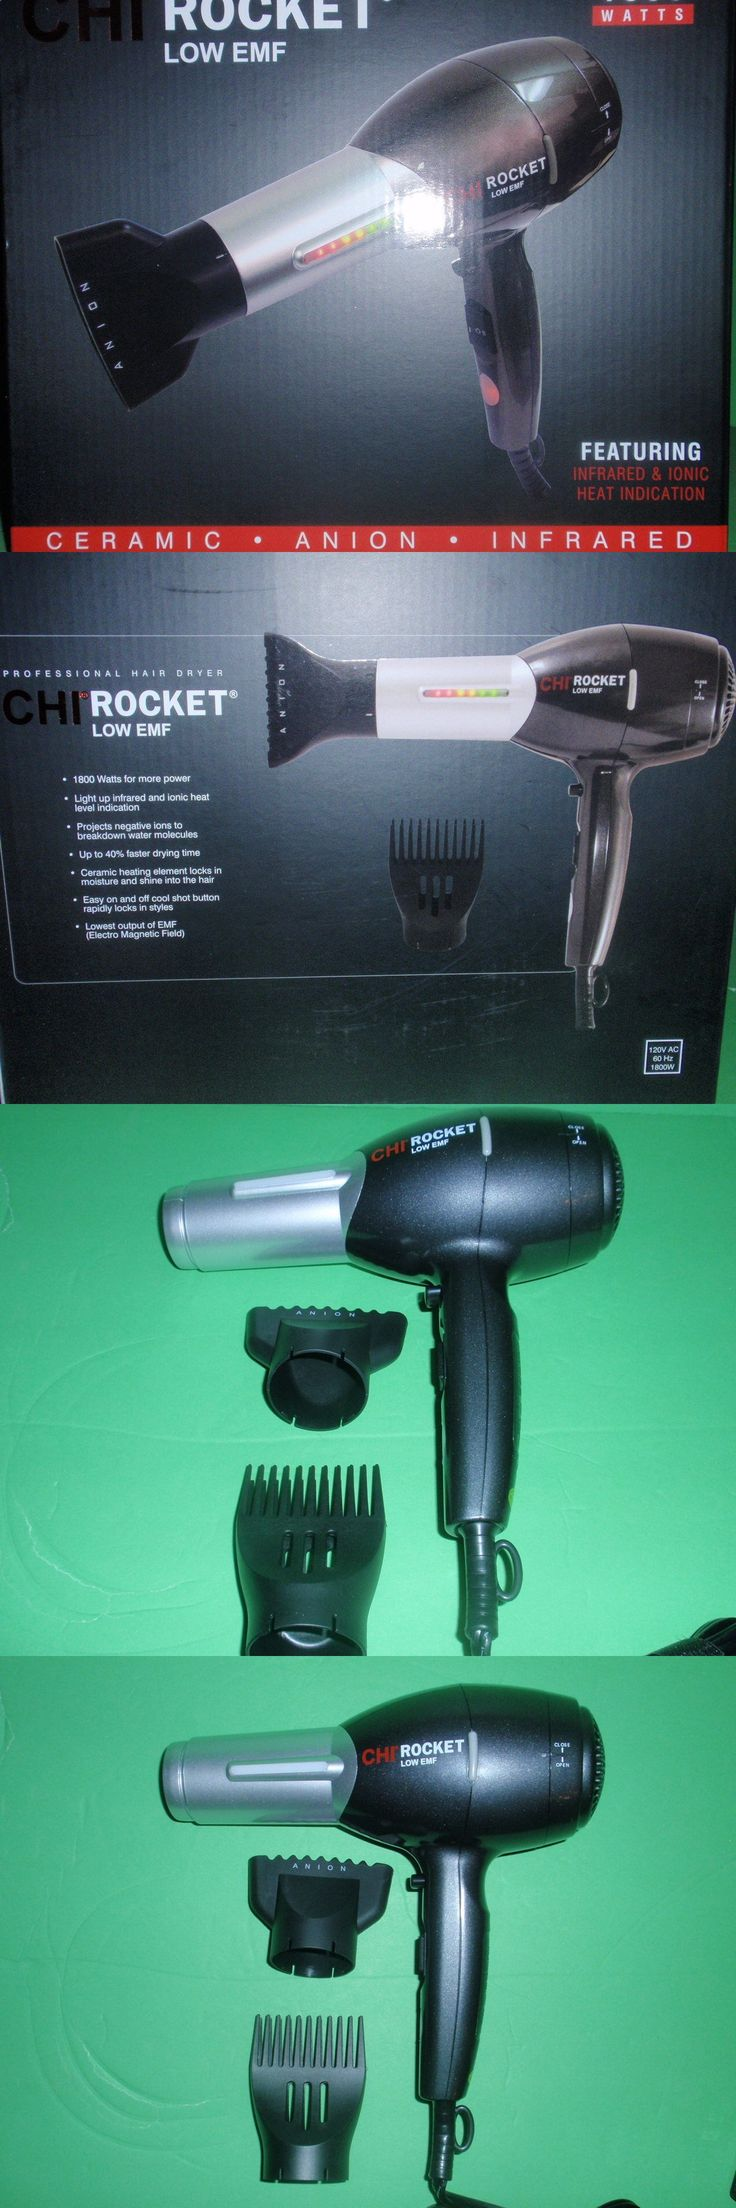 Hair Dryers: Chi Rocket Low Emf Professional Hair Dryer -> BUY IT NOW ONLY: $115.0 on eBay!